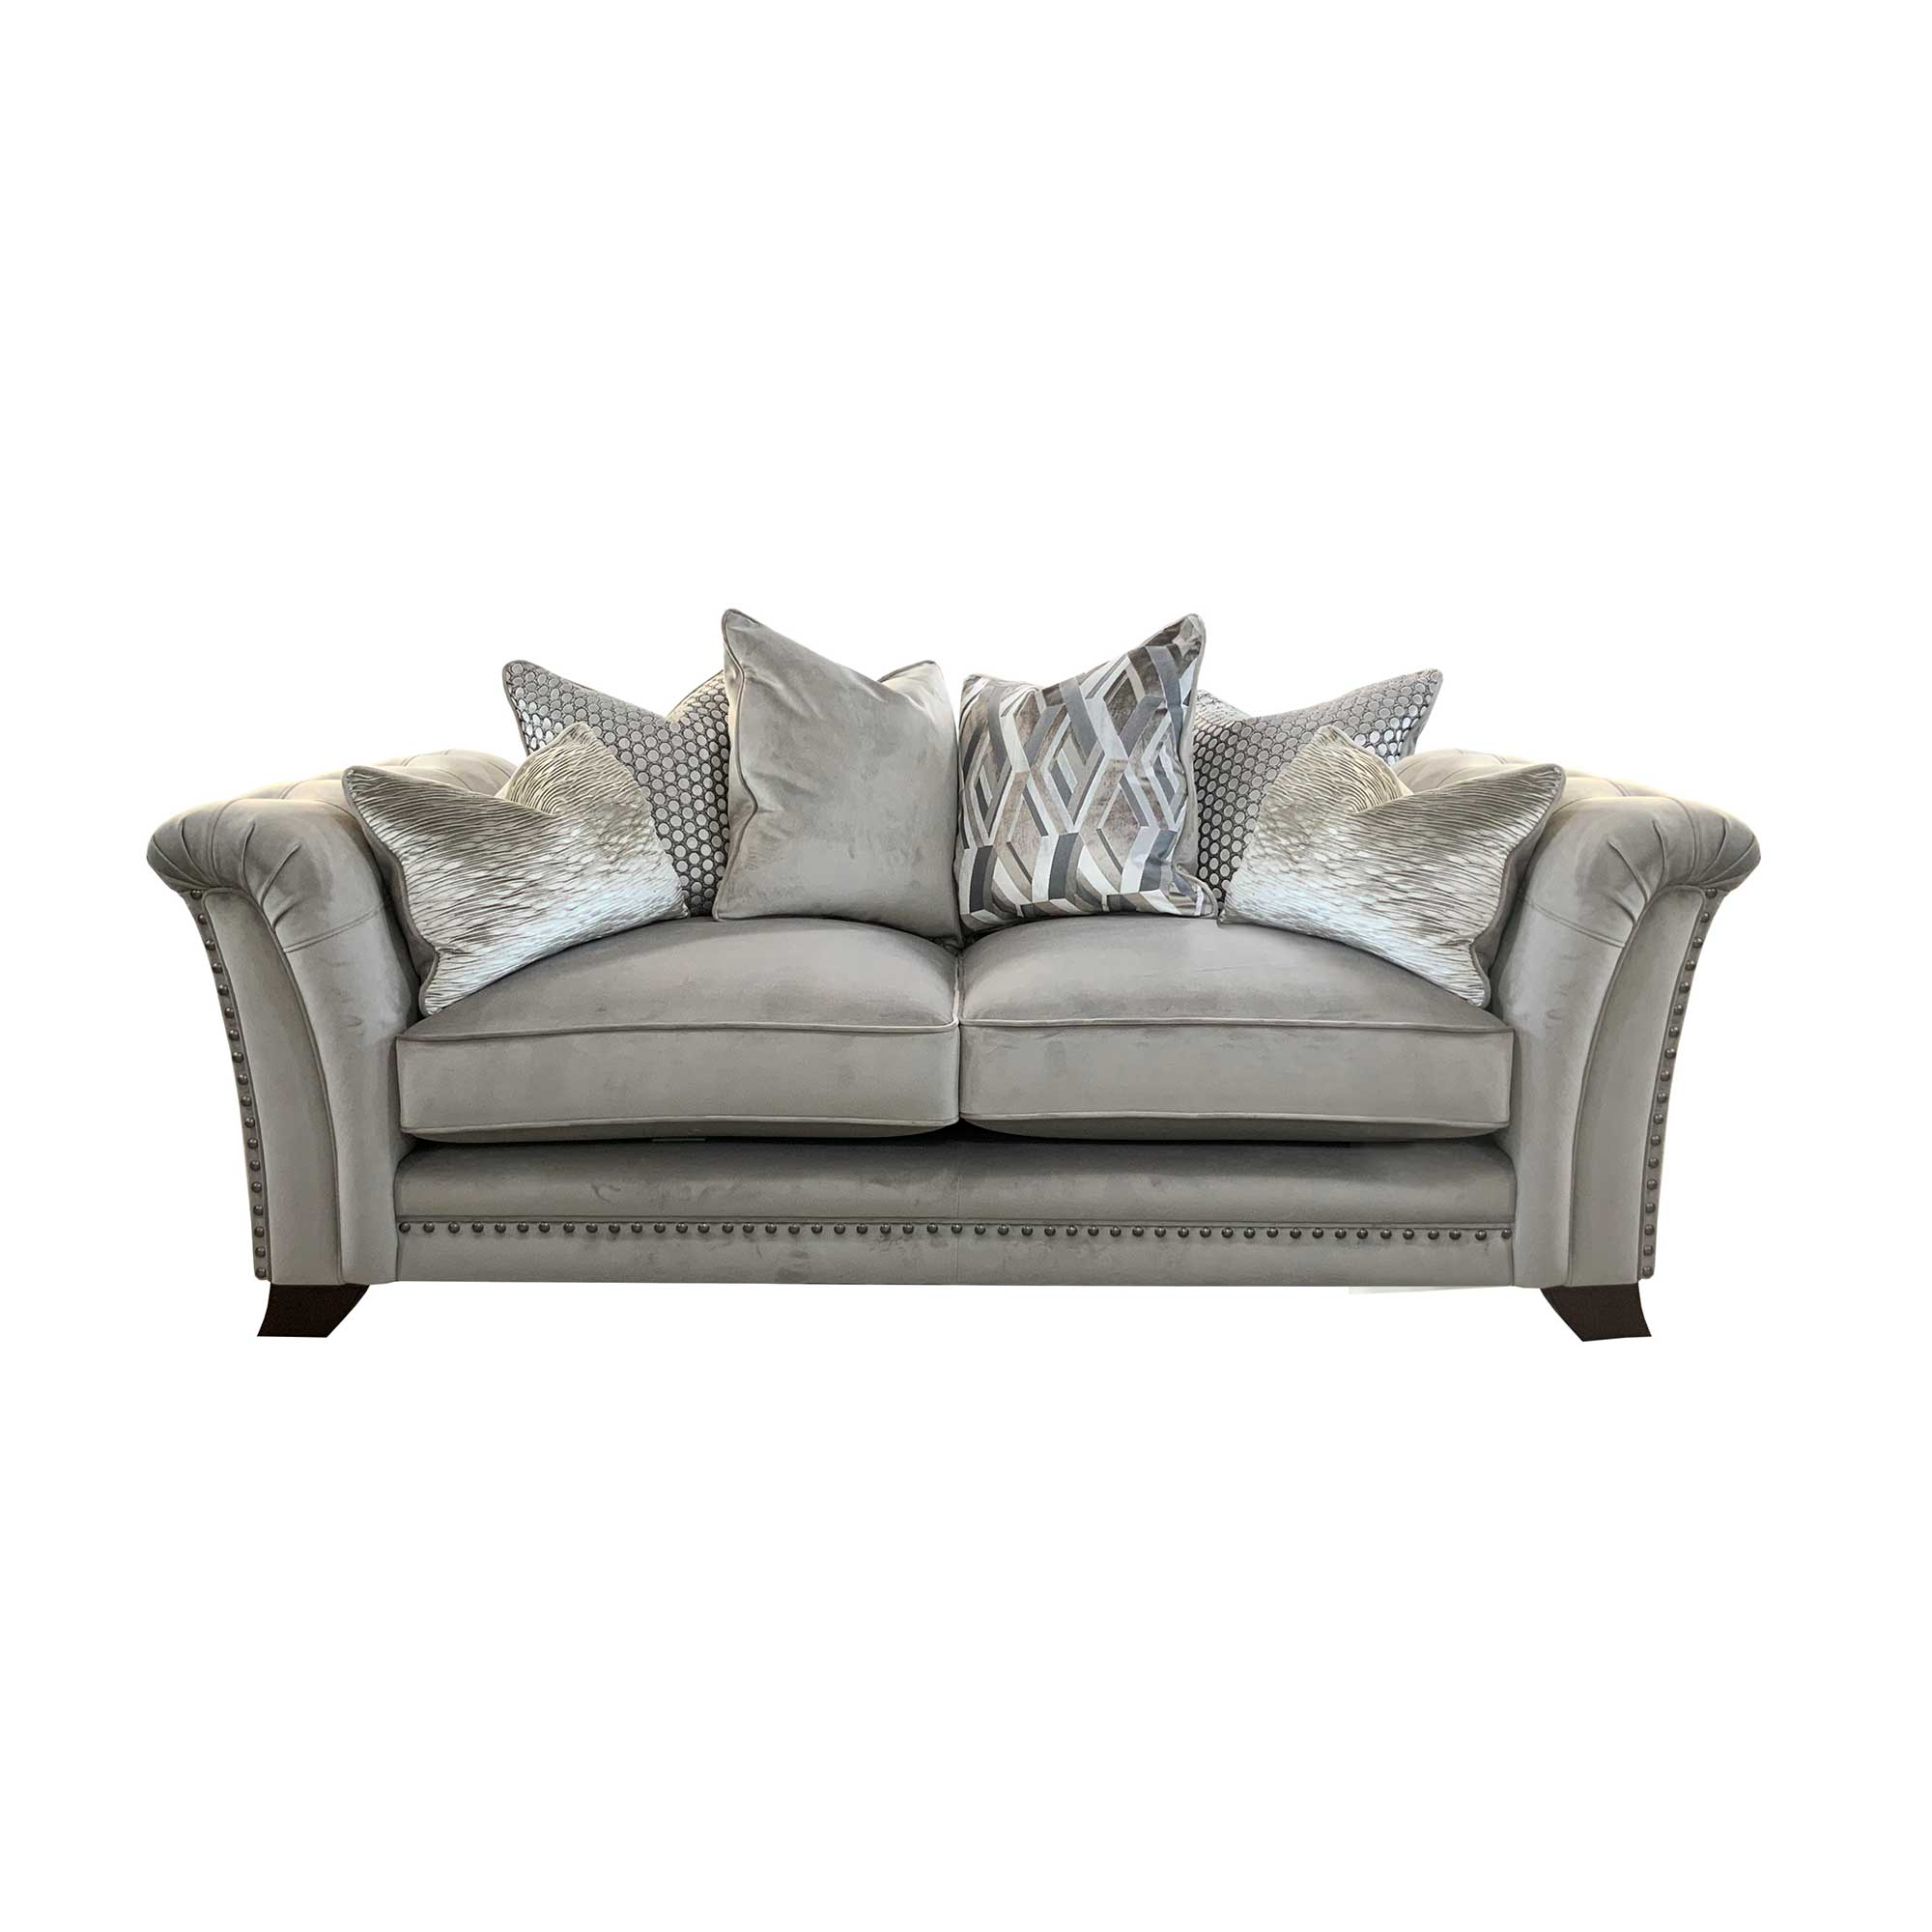 LUTON 2 SEATER PILLOW BACK